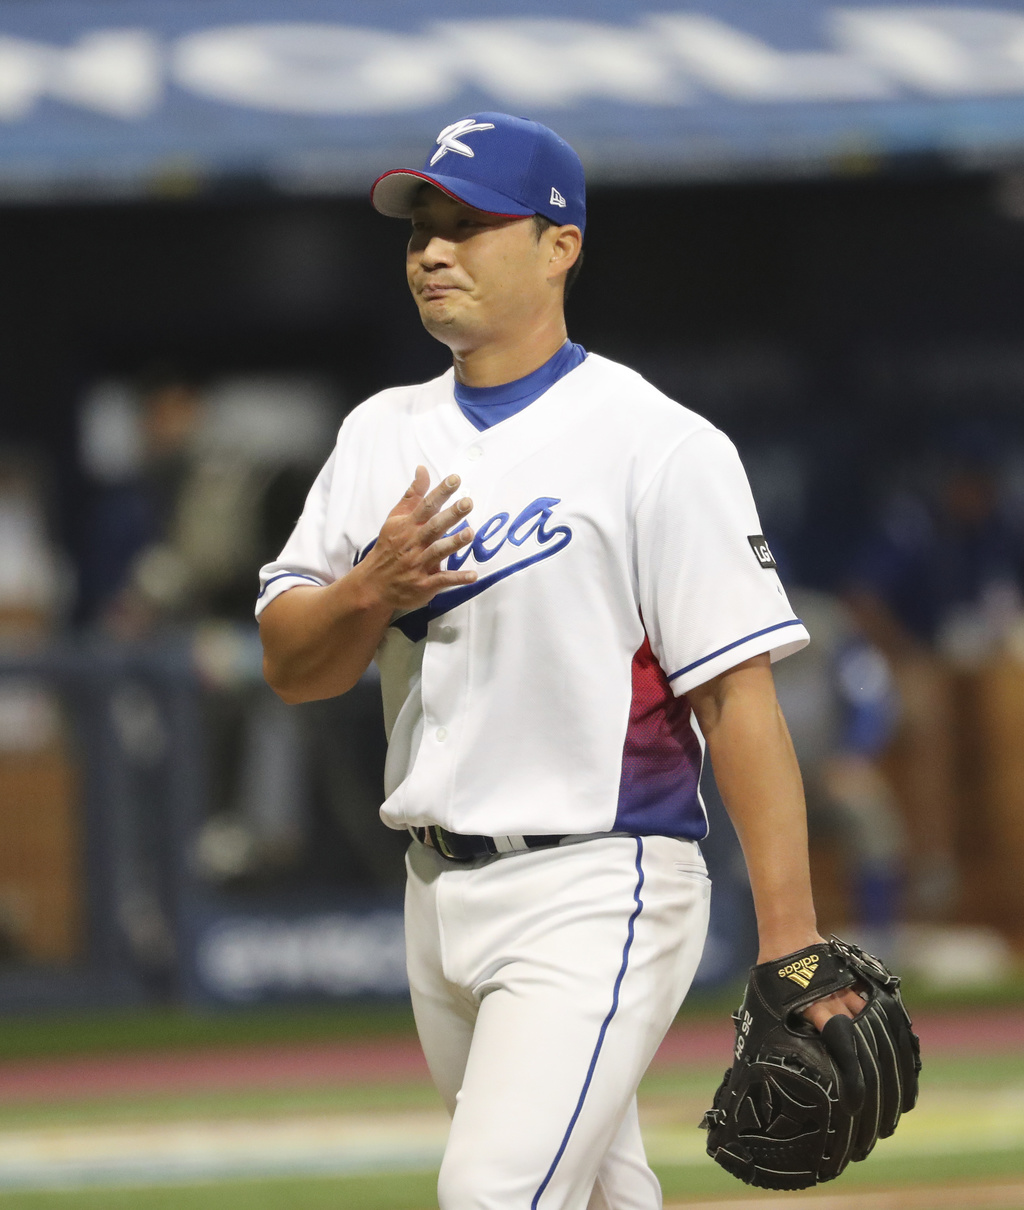 South Korea's pitcher Seung Hwan Oh walks to the dugout during the game against Israel at the first round game of the World Baseball Cl...